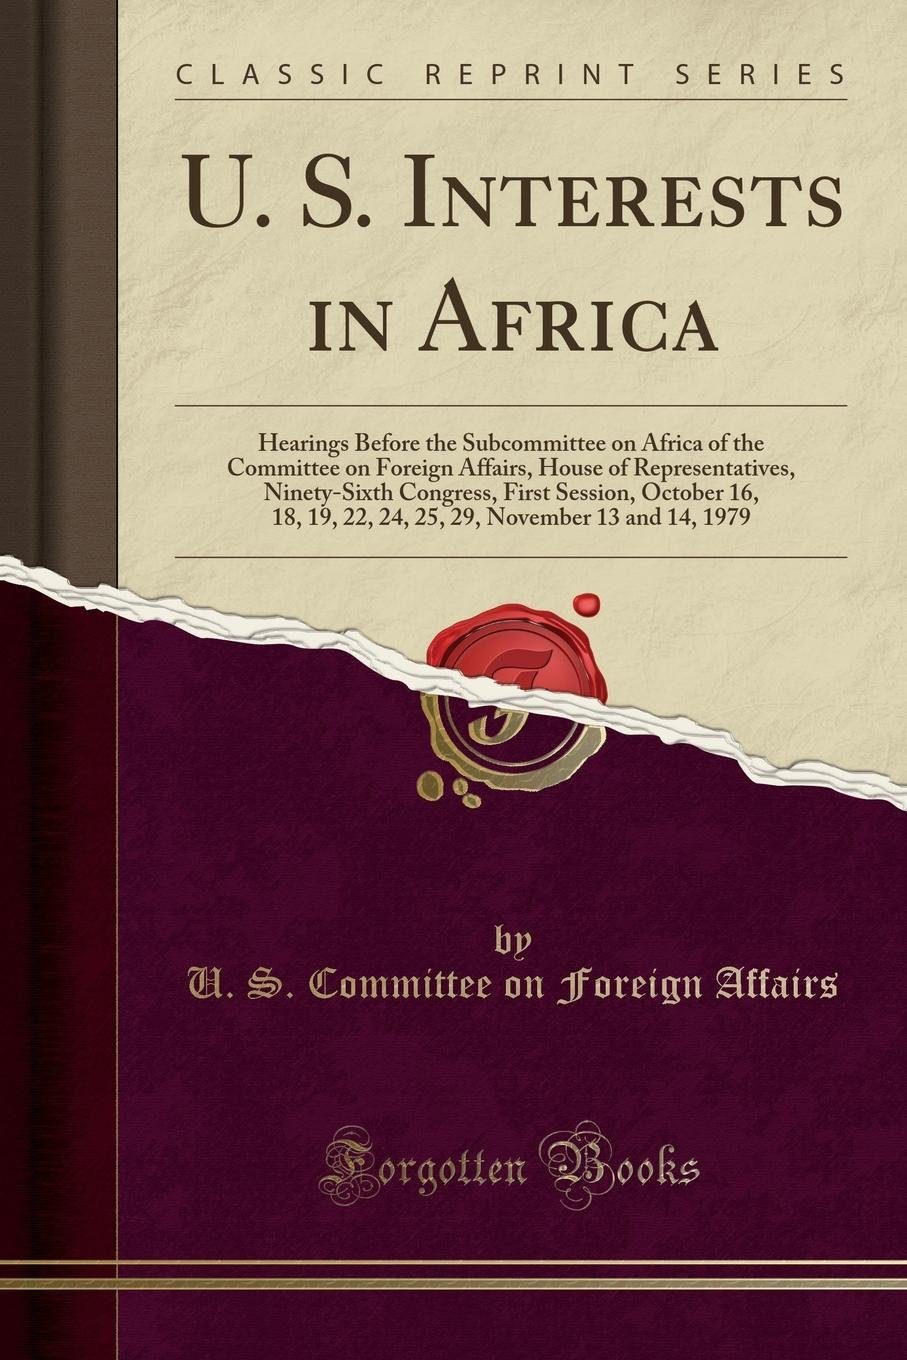 Download U. S. Interests in Africa: Hearings Before the Subcommittee on Africa of the Committee on Foreign Affairs, House of Representatives, Ninety-Sixth ... November 13 and 14, 1979 (Classic Reprint) ebook